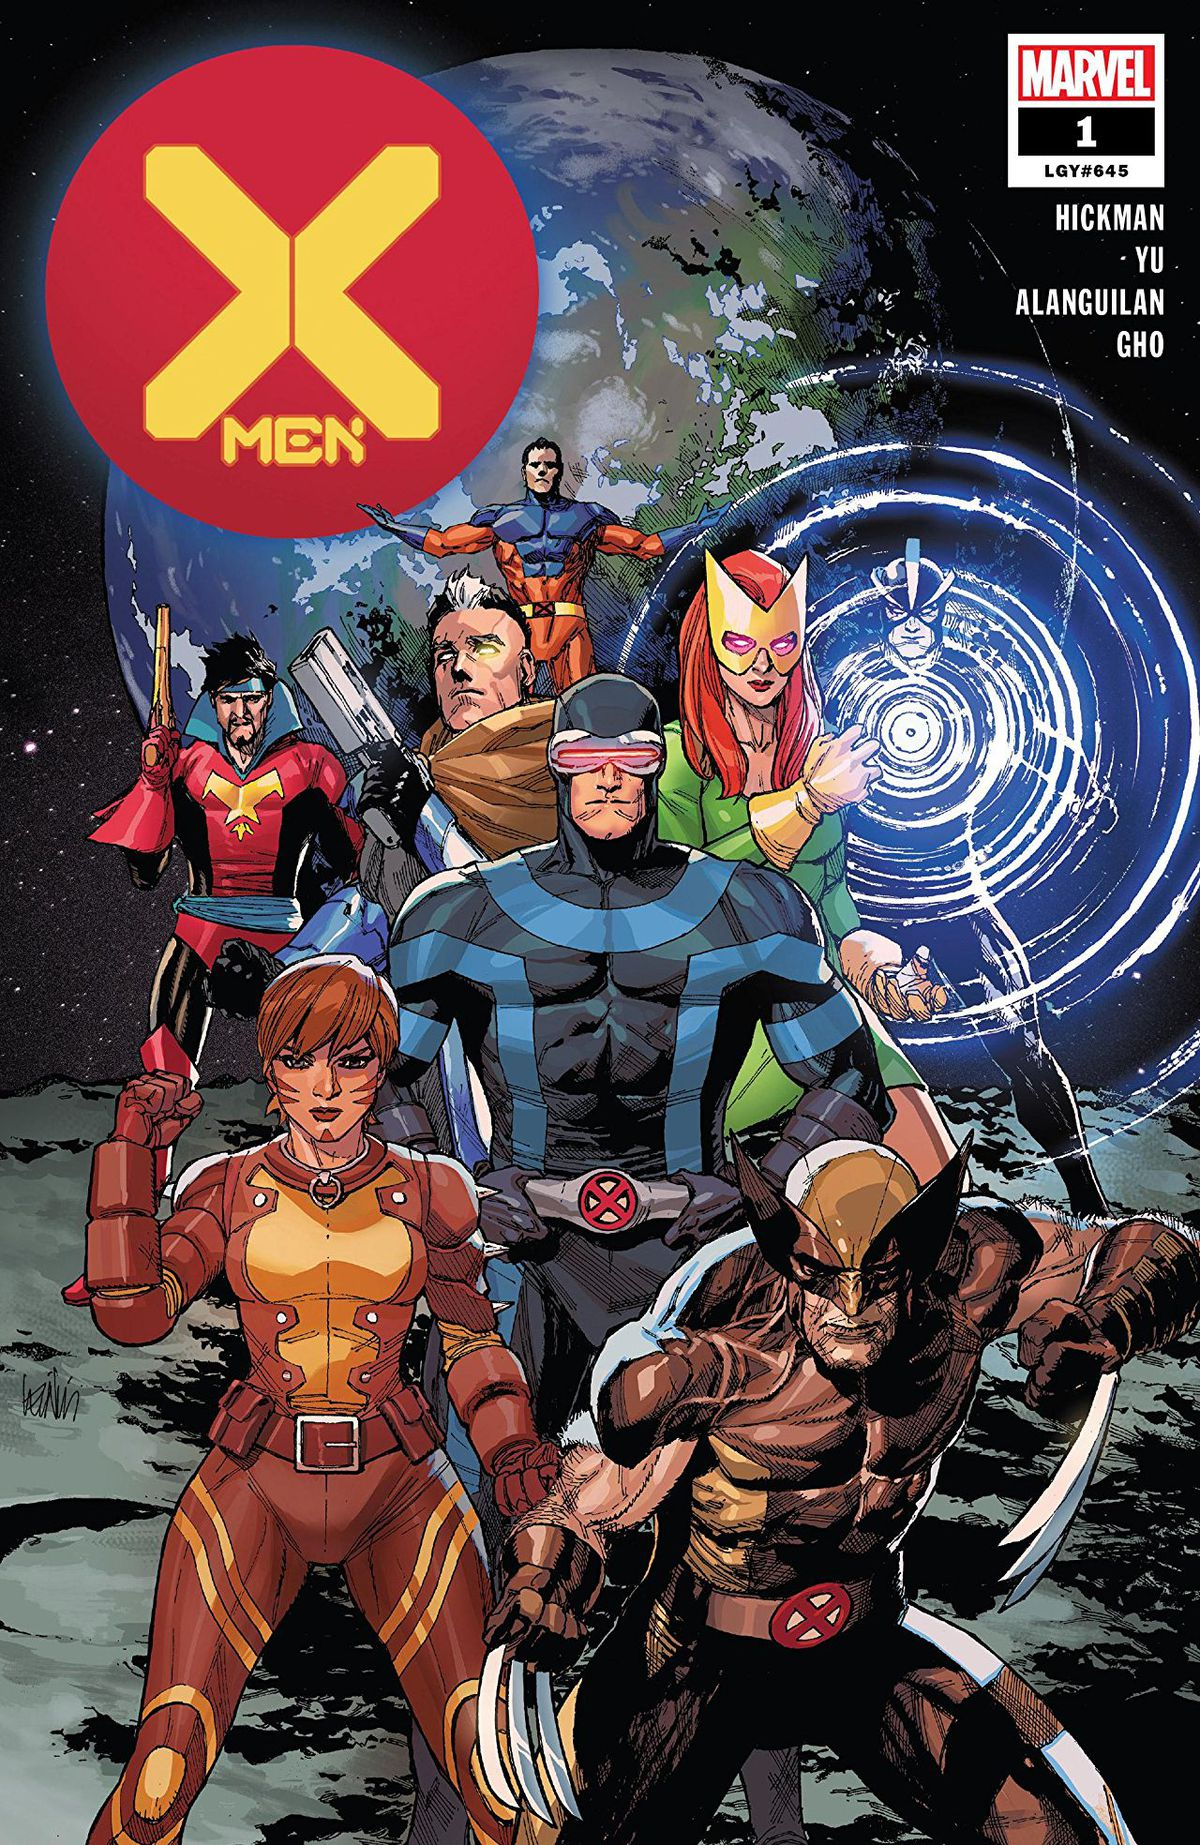 Cyclops and family on the cover of X-Men #1, Marvel Comics (2019).